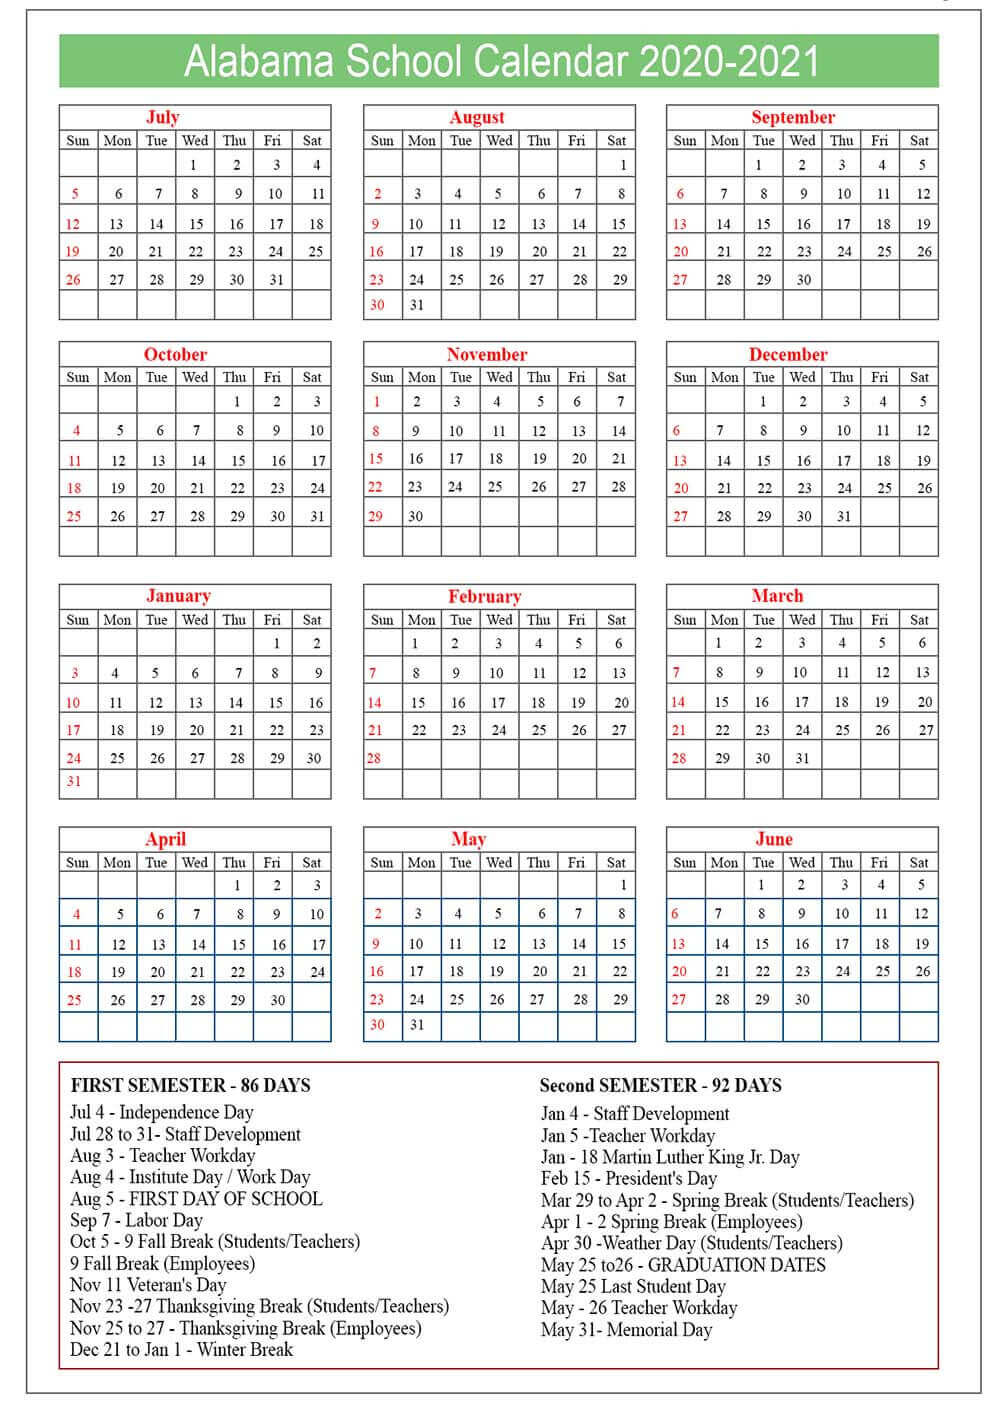 Alabama School Calendar 2020